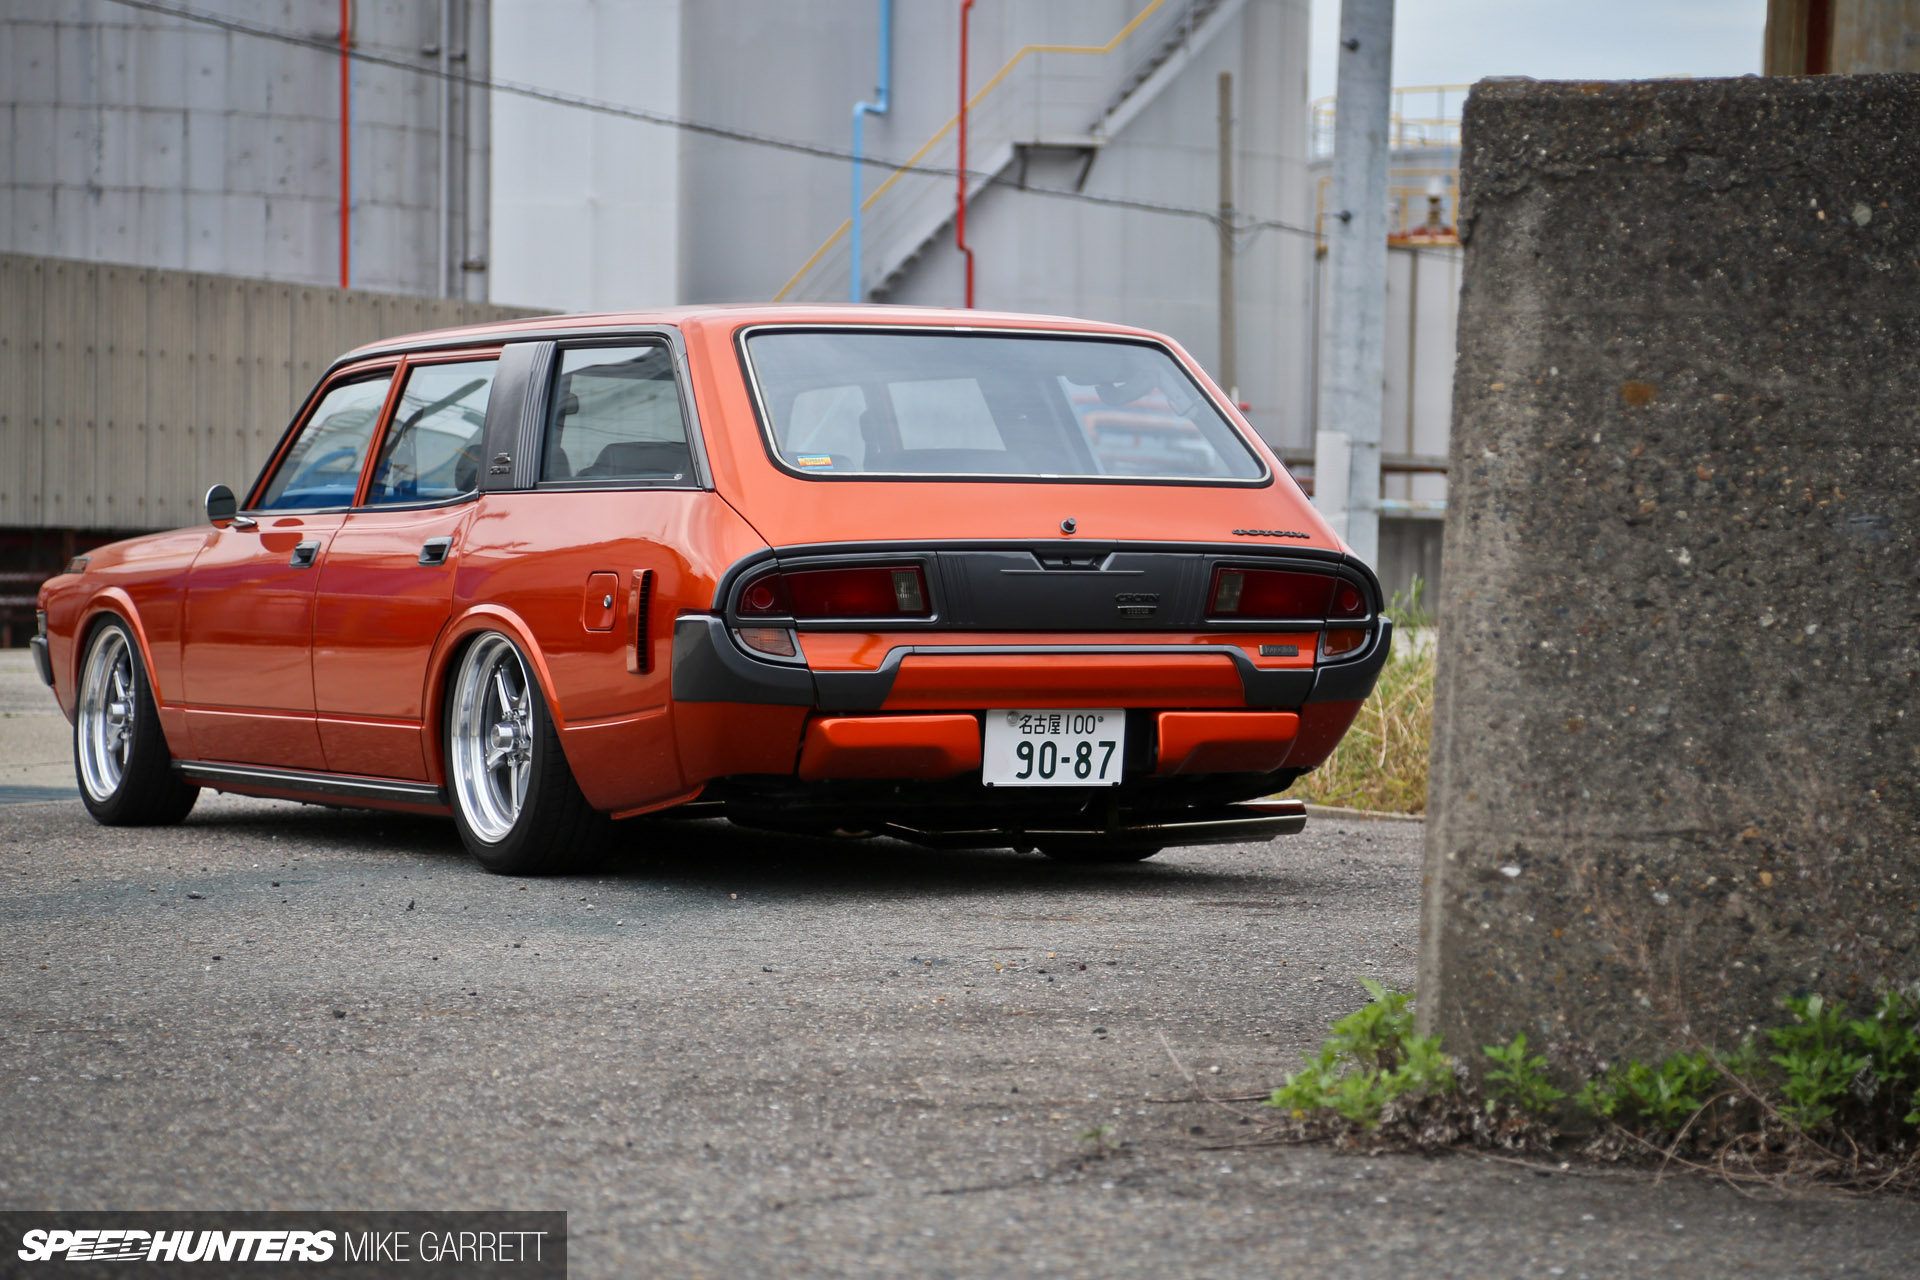 The Japanese Muscle Wagon Speedhunters